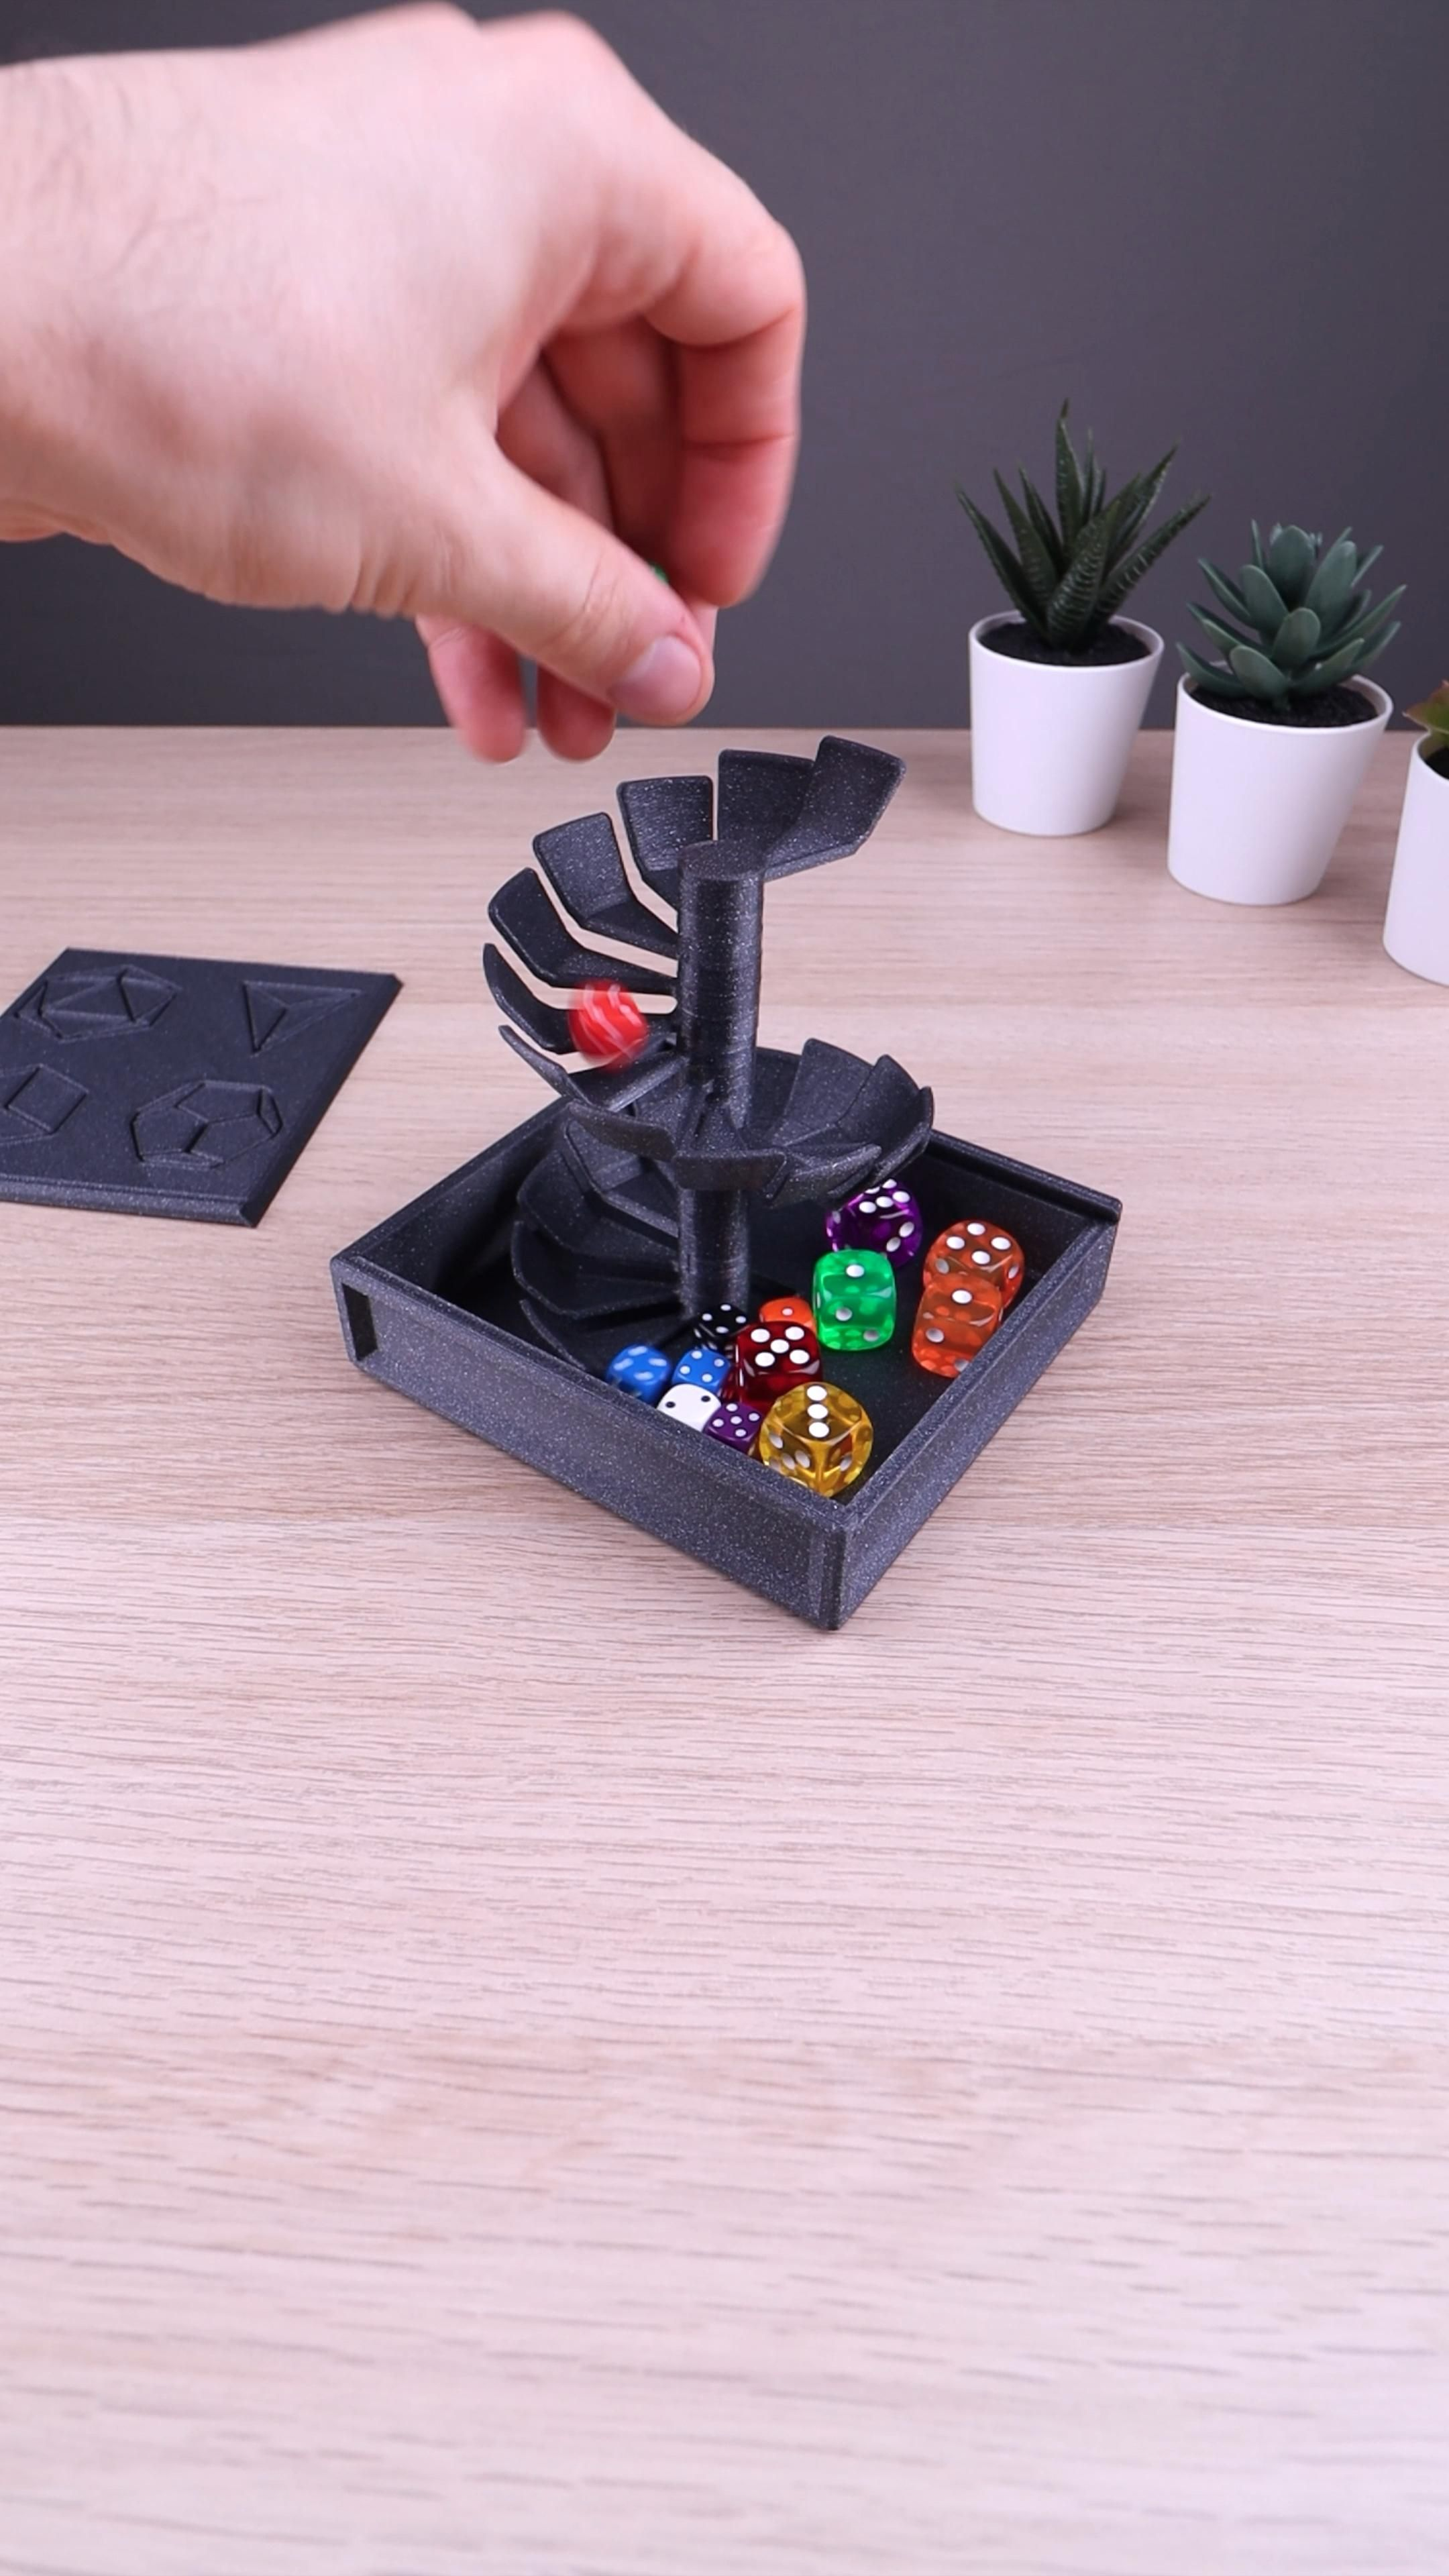 3D Printed Foldable Dice Tower